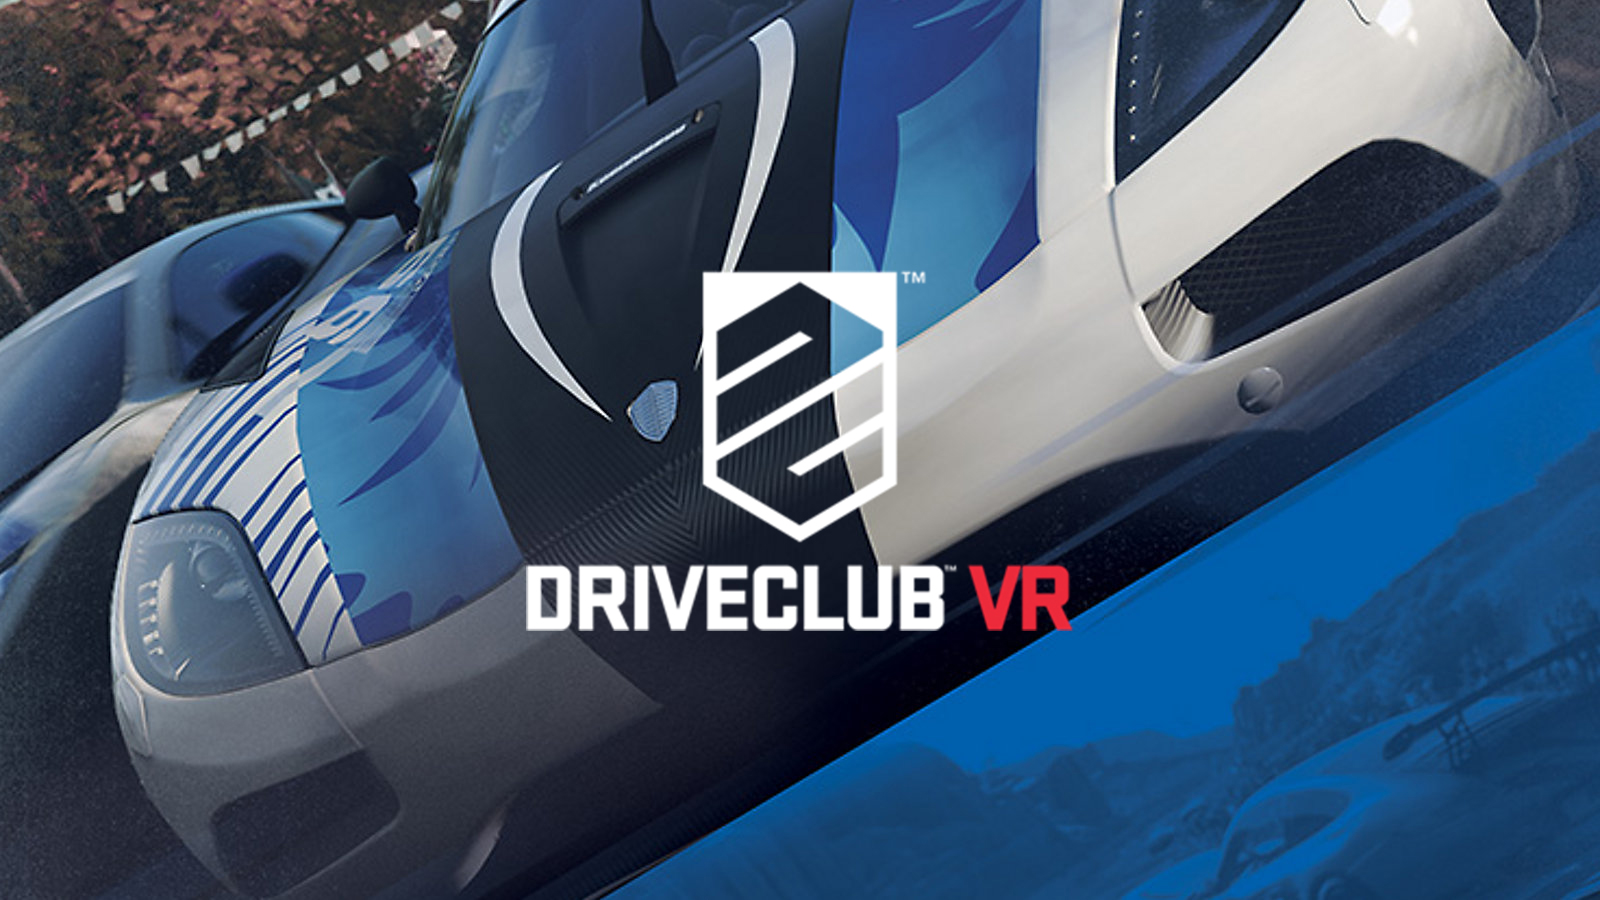 driveclub-vr-listing-thumb-01-ps4-us-13oct16